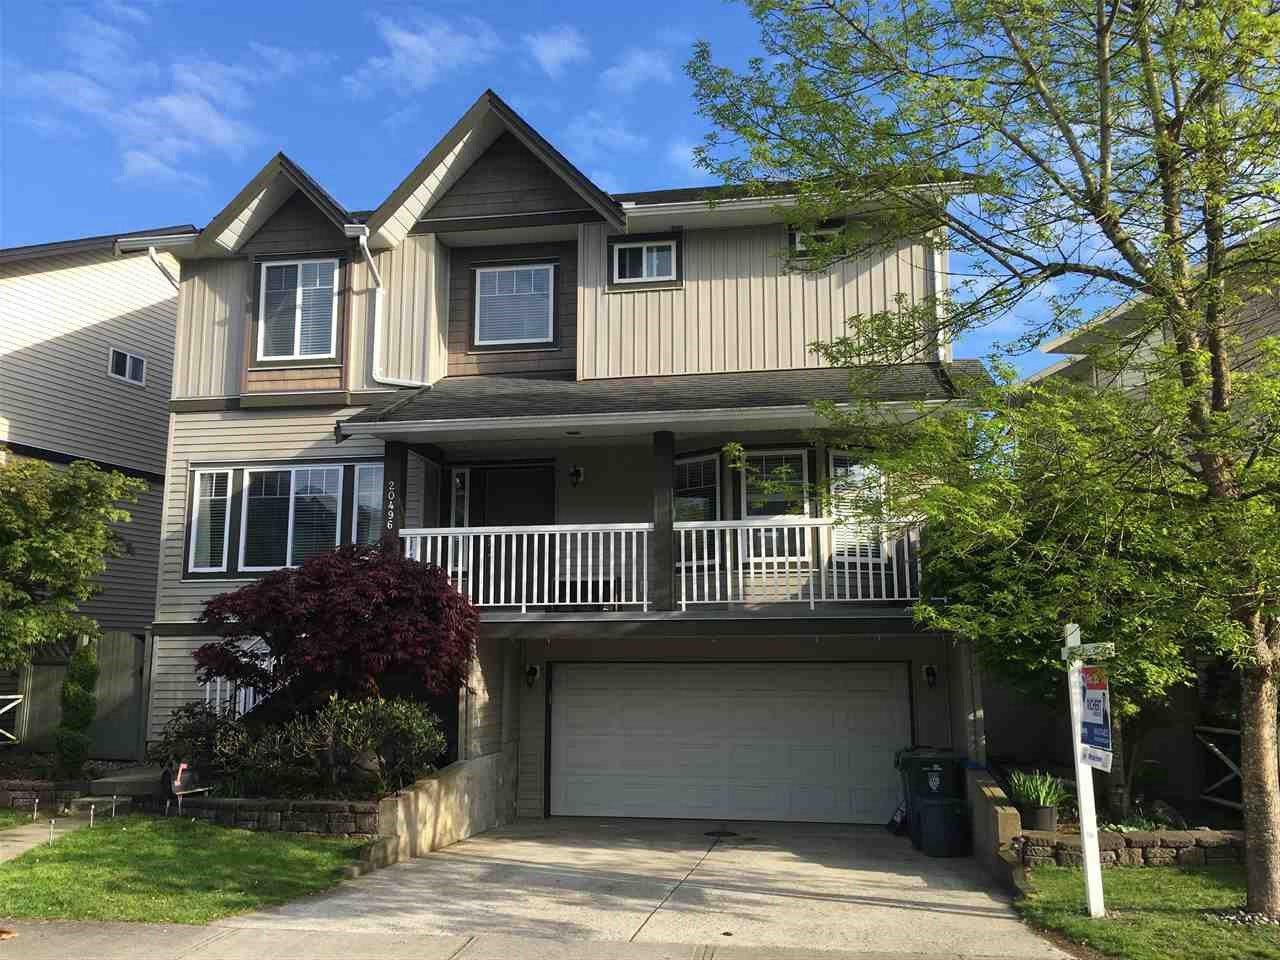 """Main Photo: 20496 67 Avenue in Langley: Willoughby Heights House for sale in """"Willow Ridge"""" : MLS®# R2163974"""